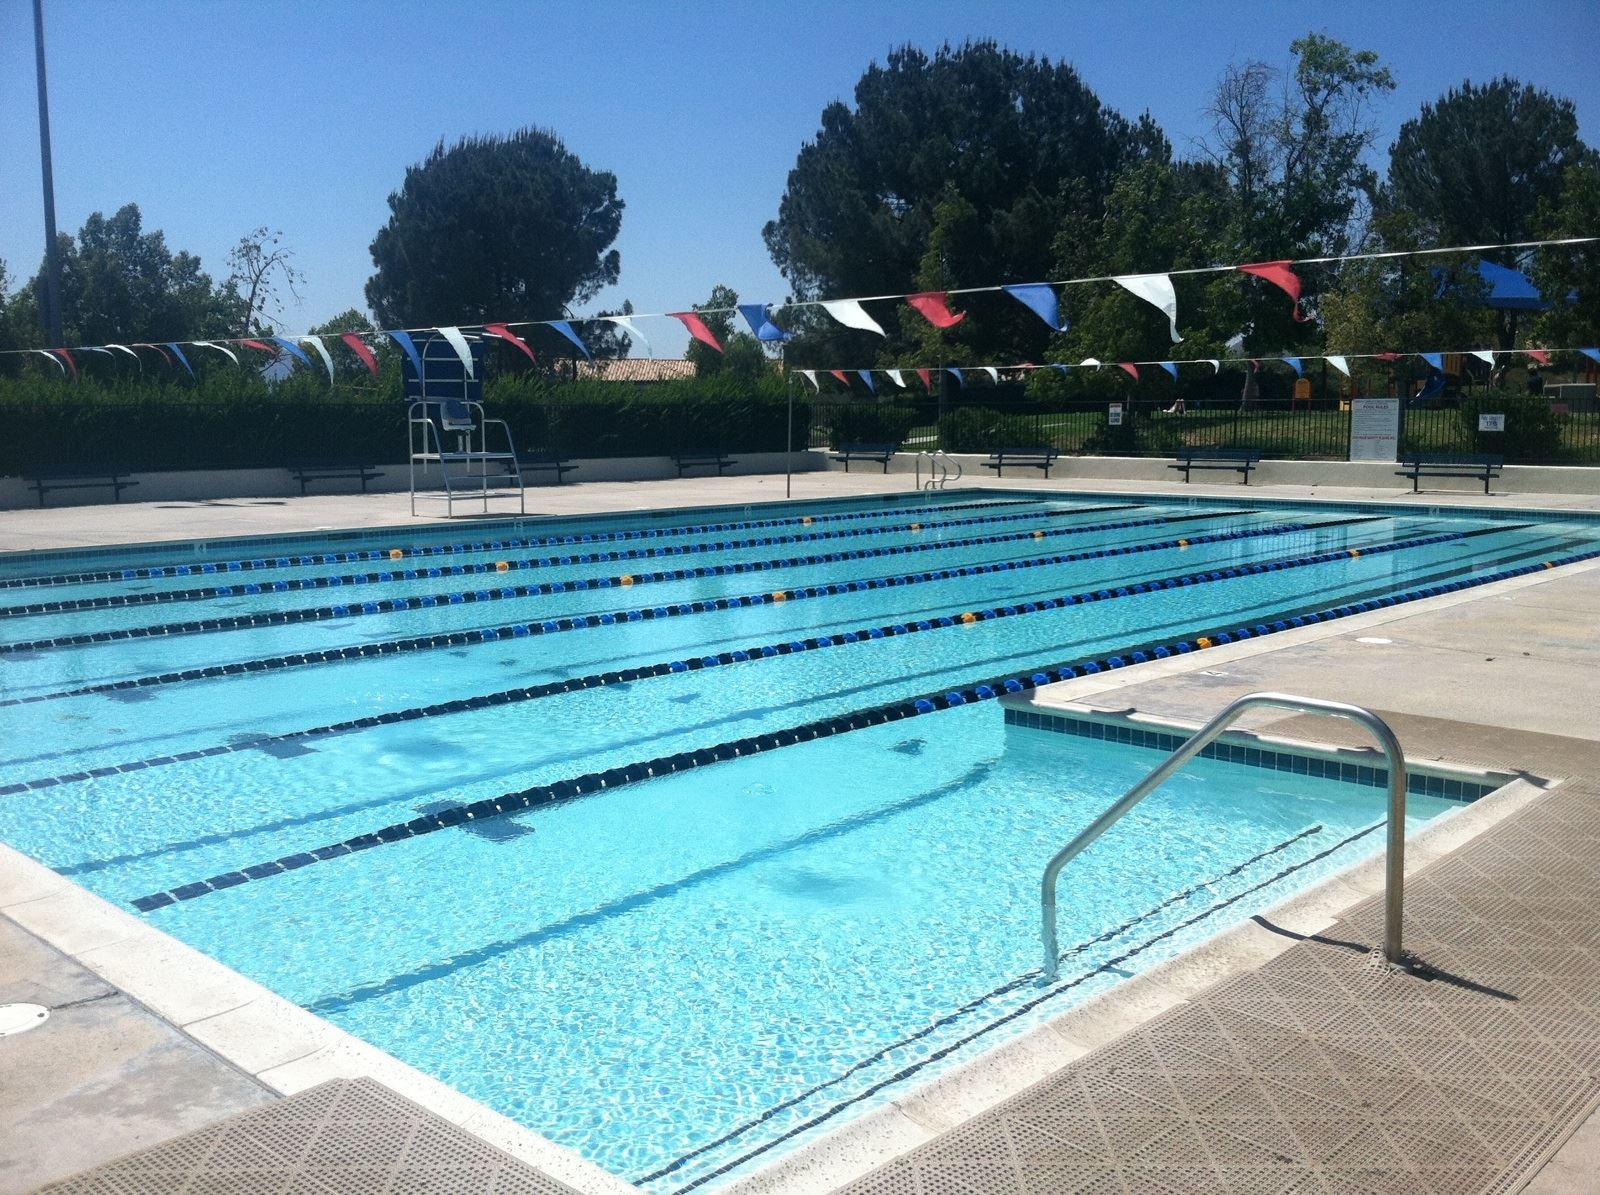 View of the California Oaks Sports Park Pool